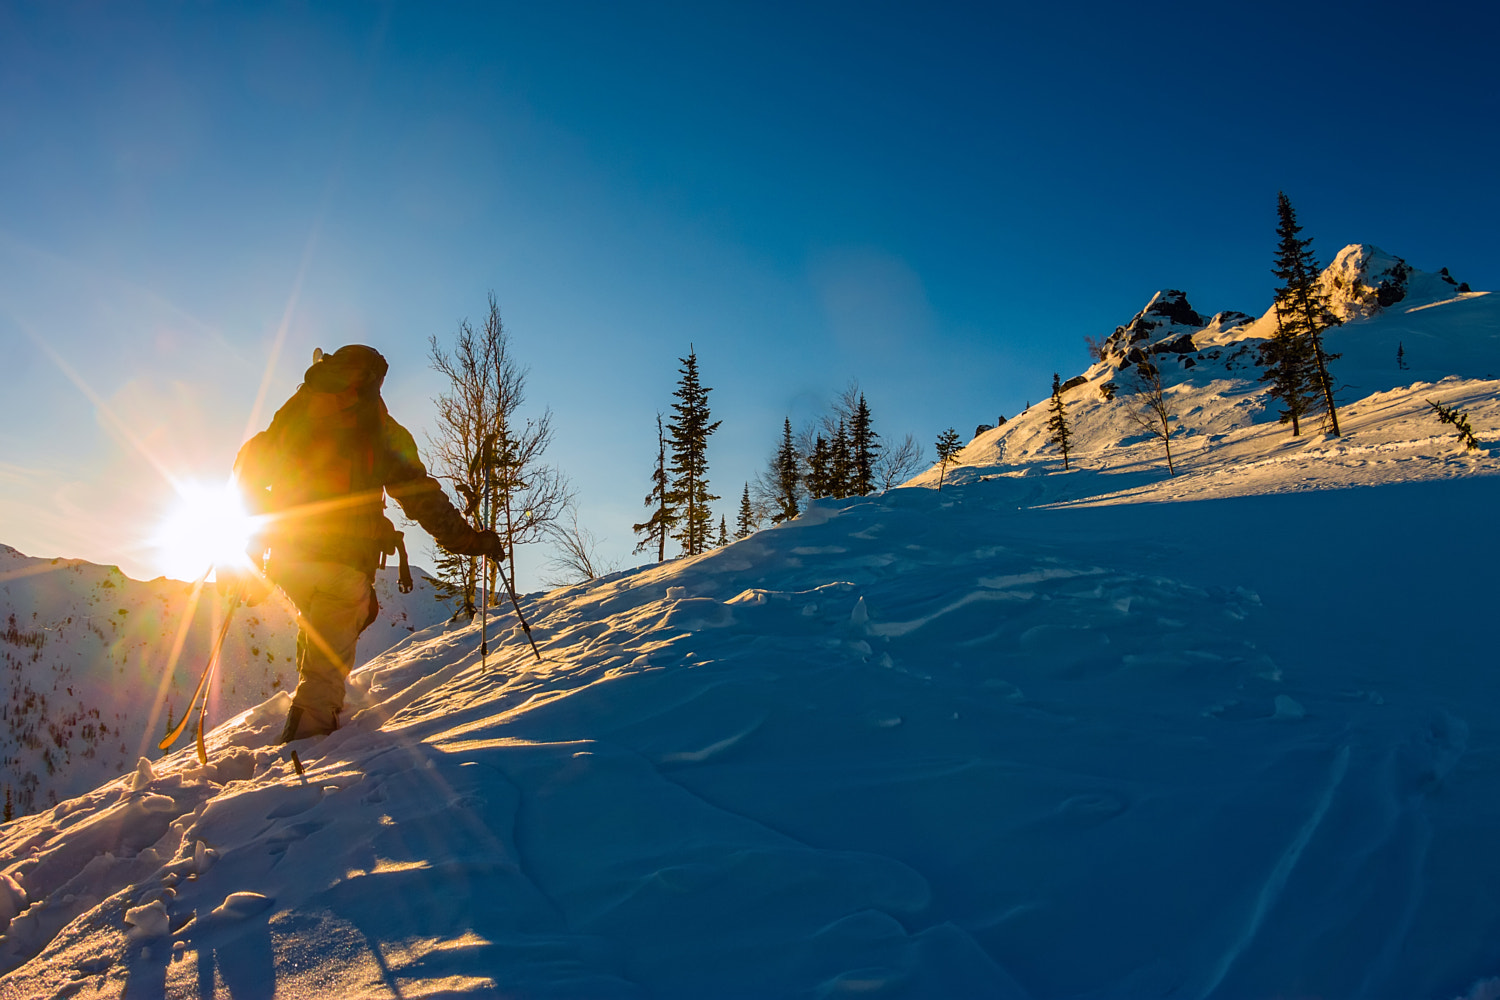 Freeride skis uphill backlit rising sun by Aleksey Zakirov on 500px.com